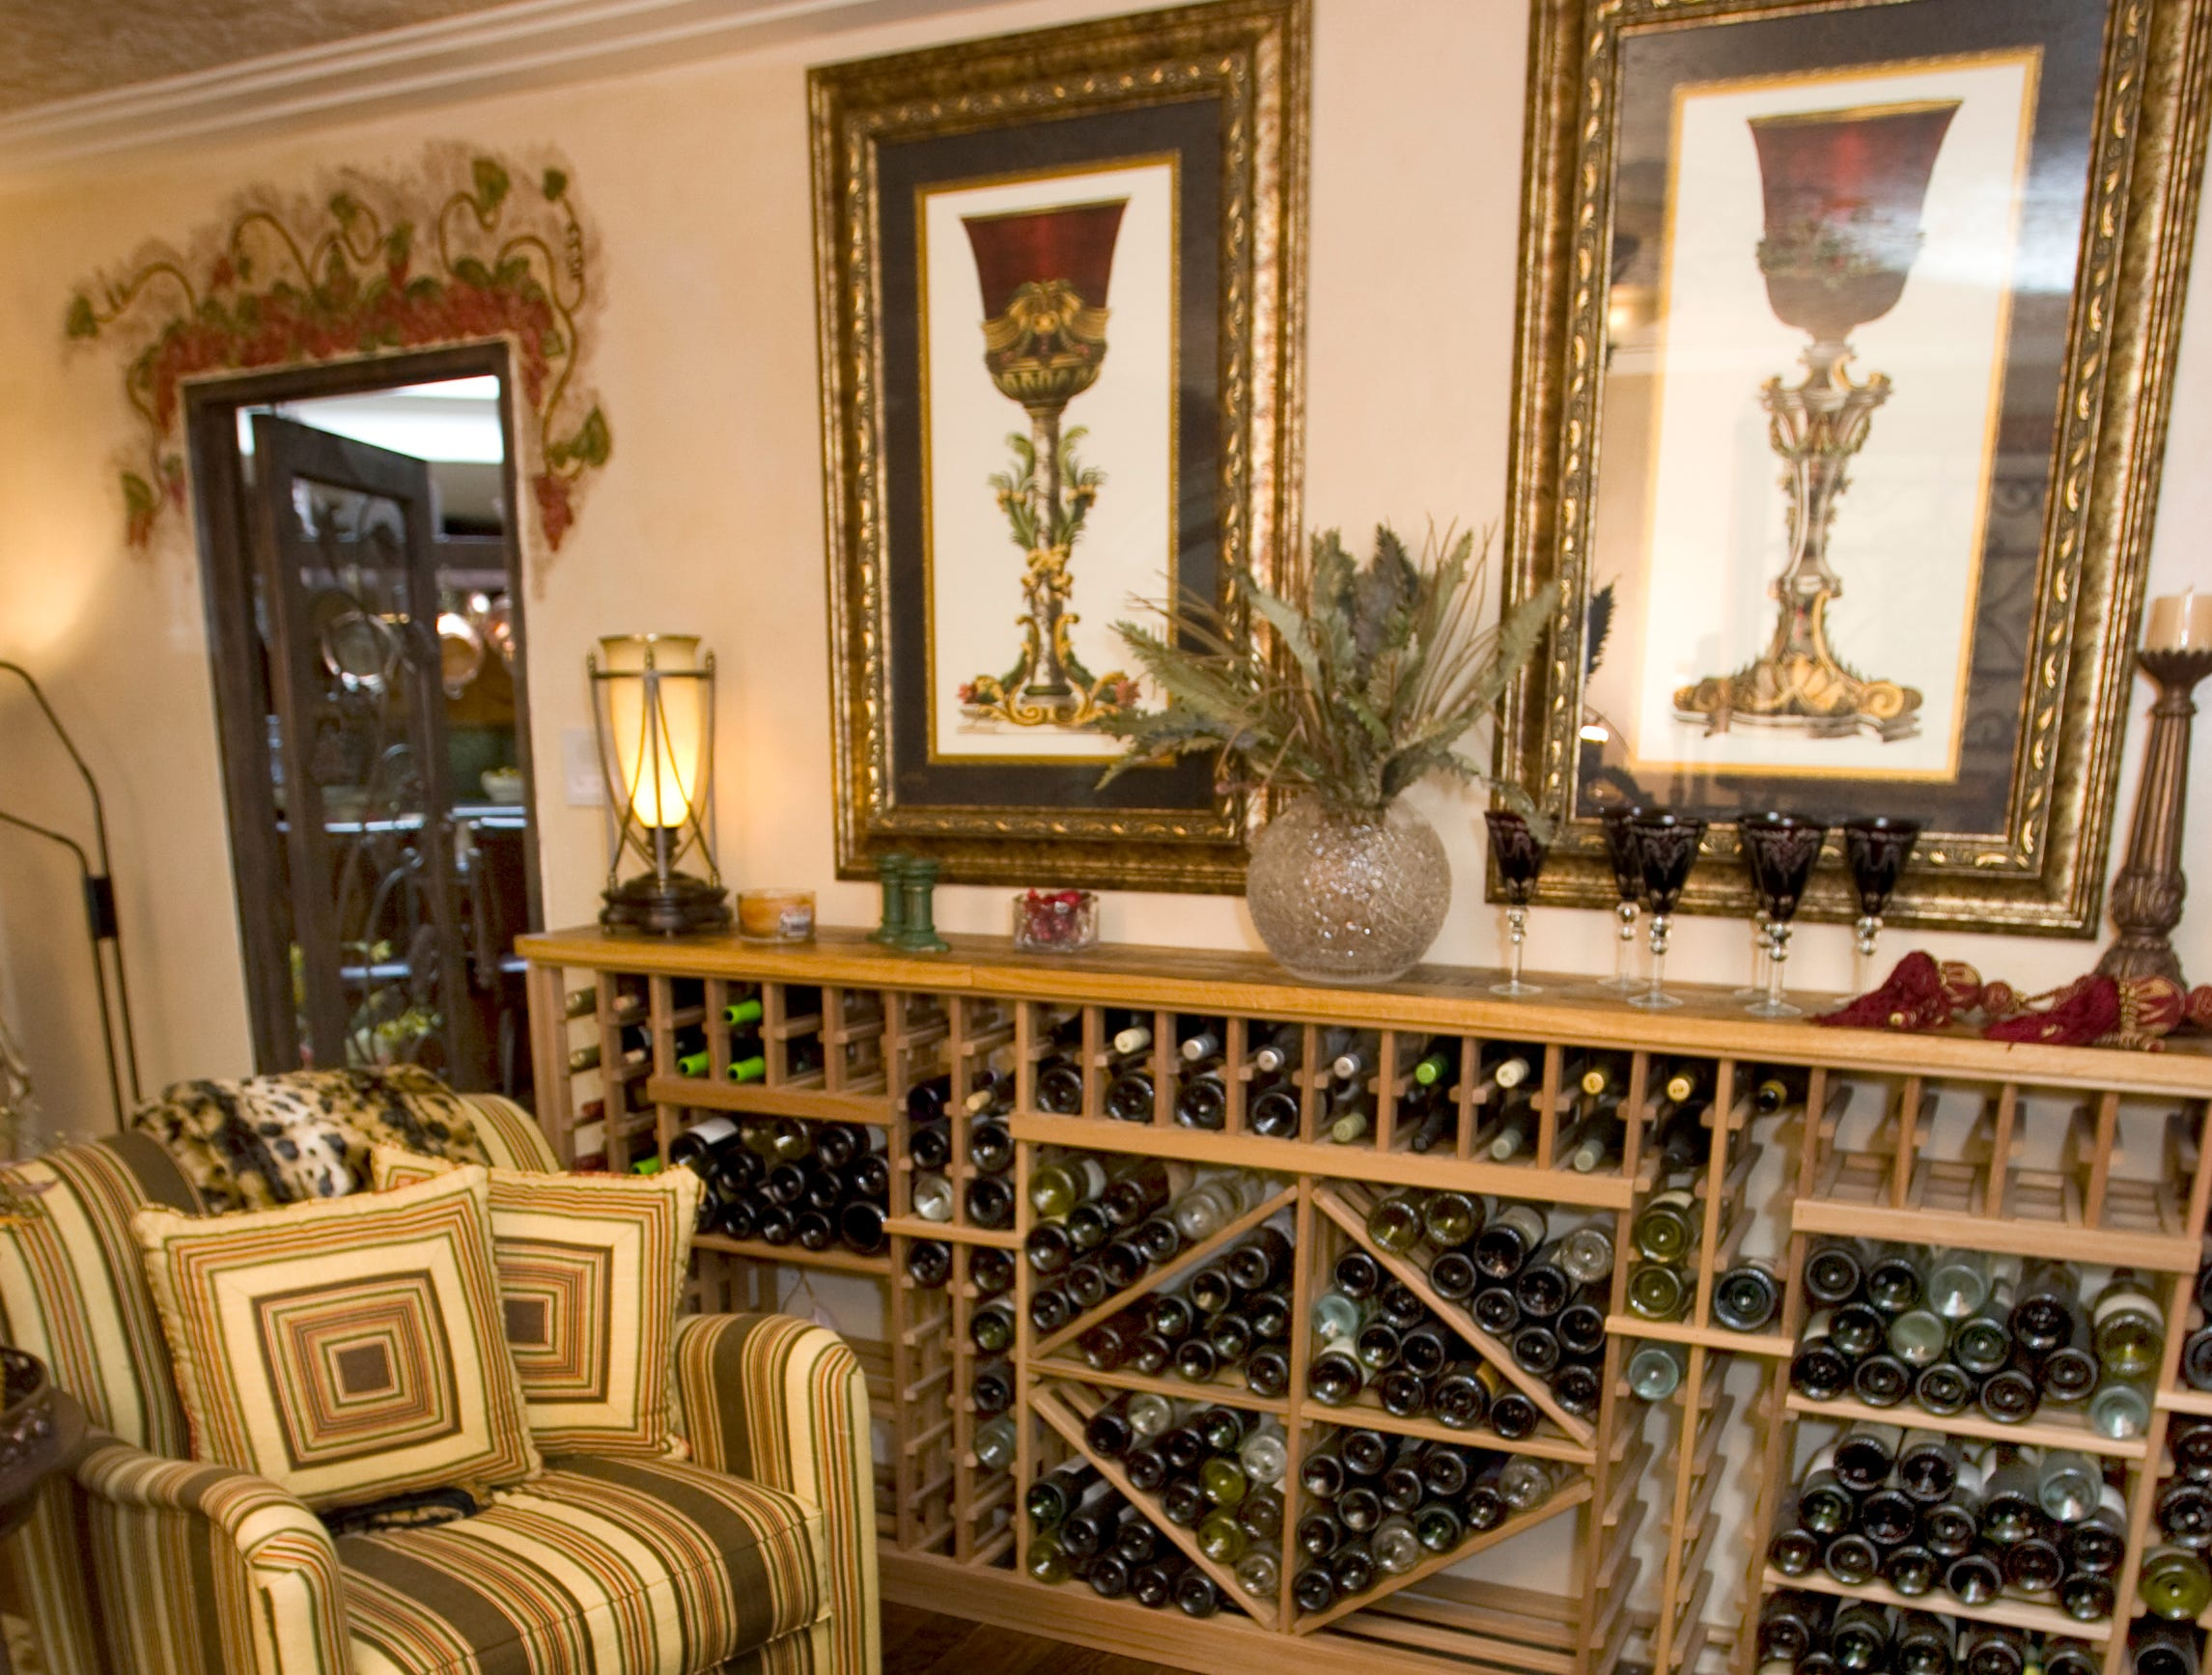 A wine-tasting room is seen in the former home of Sen. John and Cindy McCain in 2008.